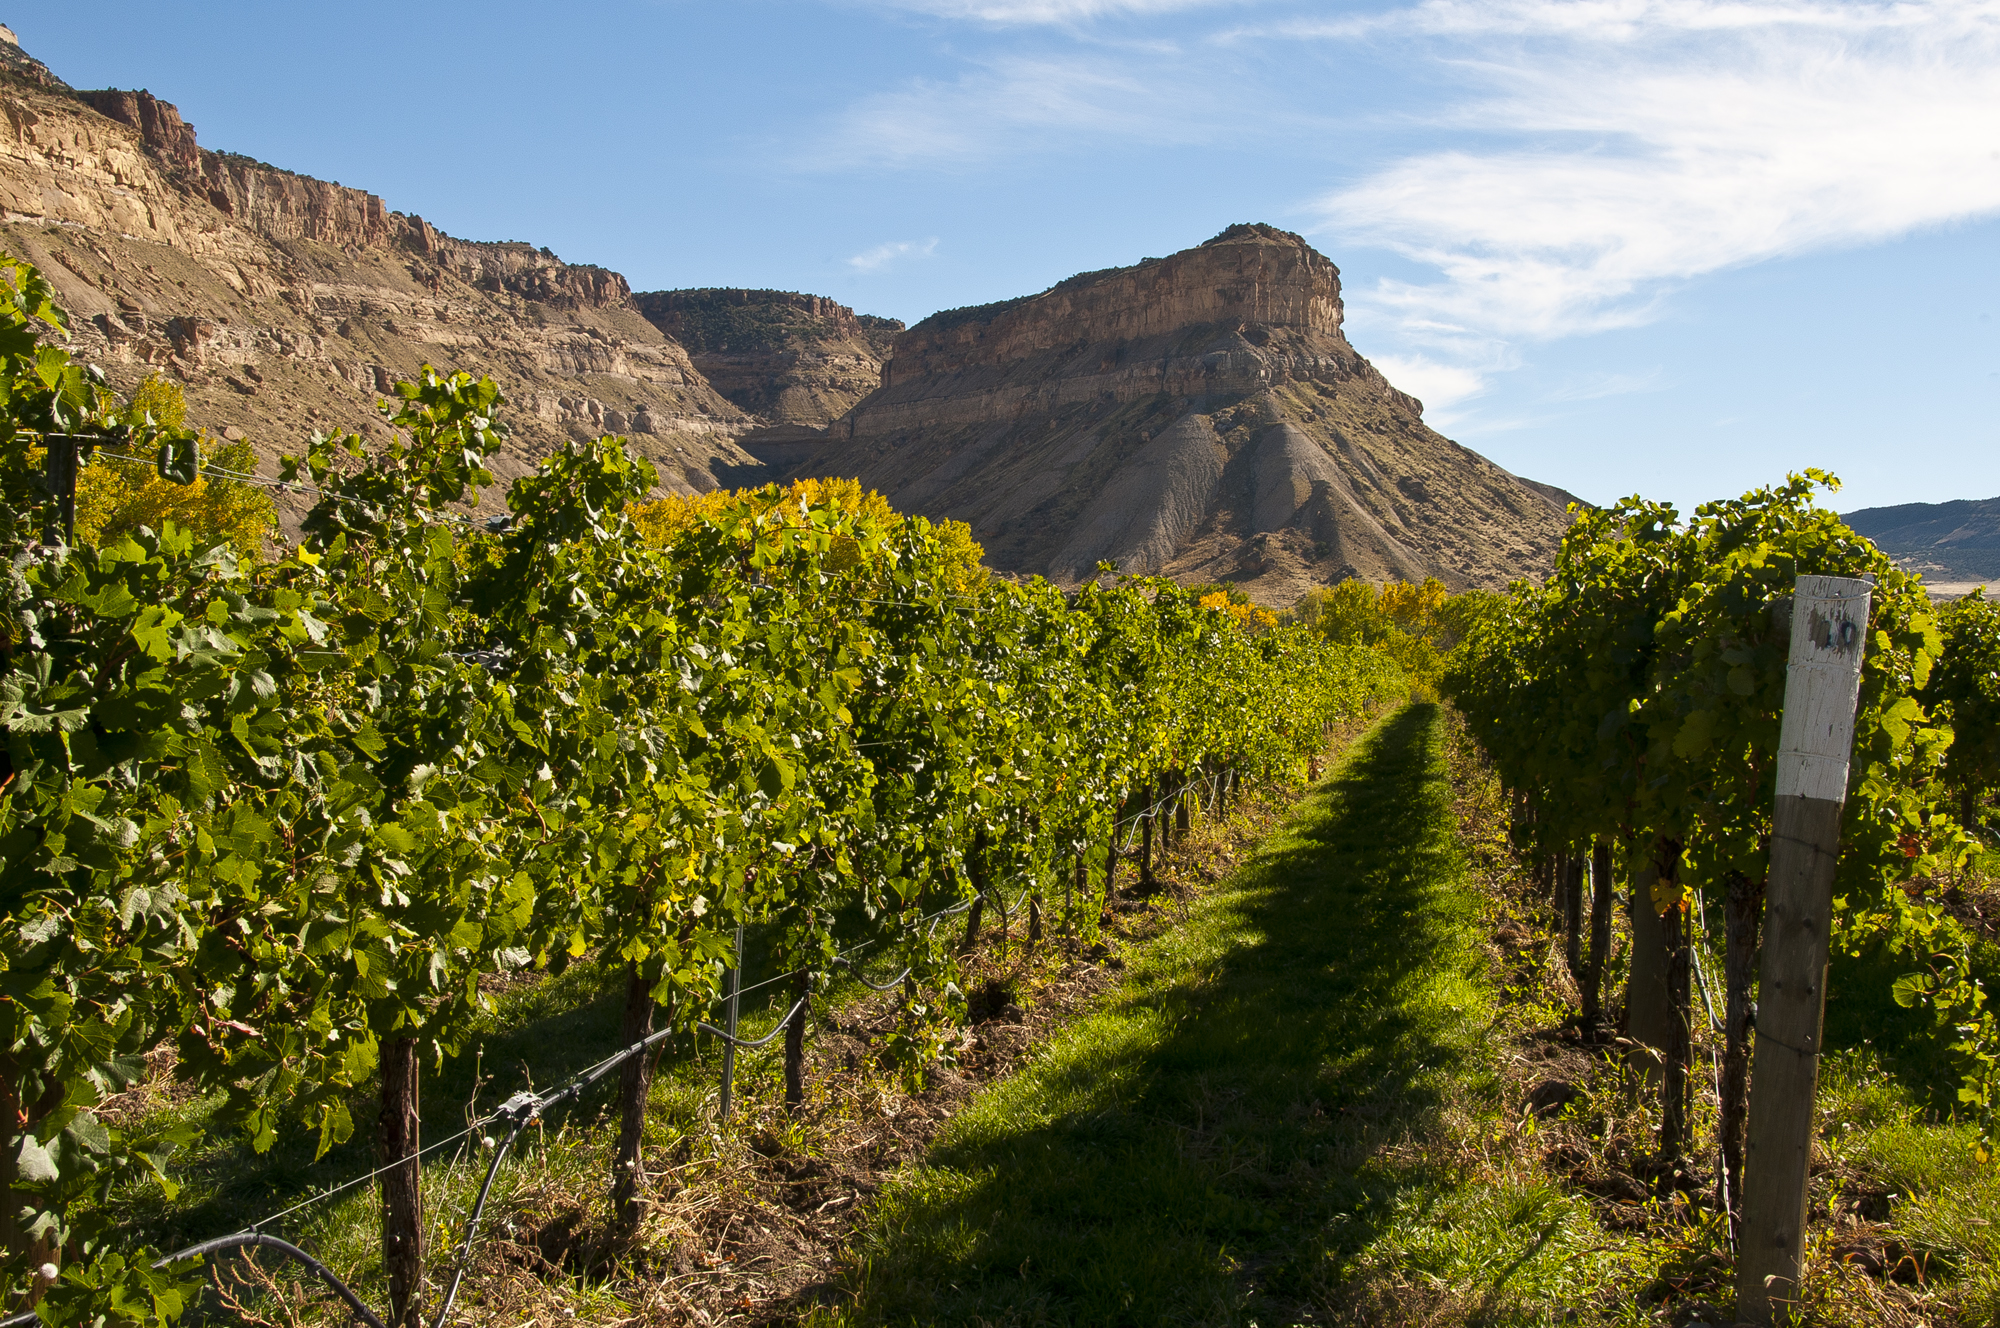 Palisade vineyard